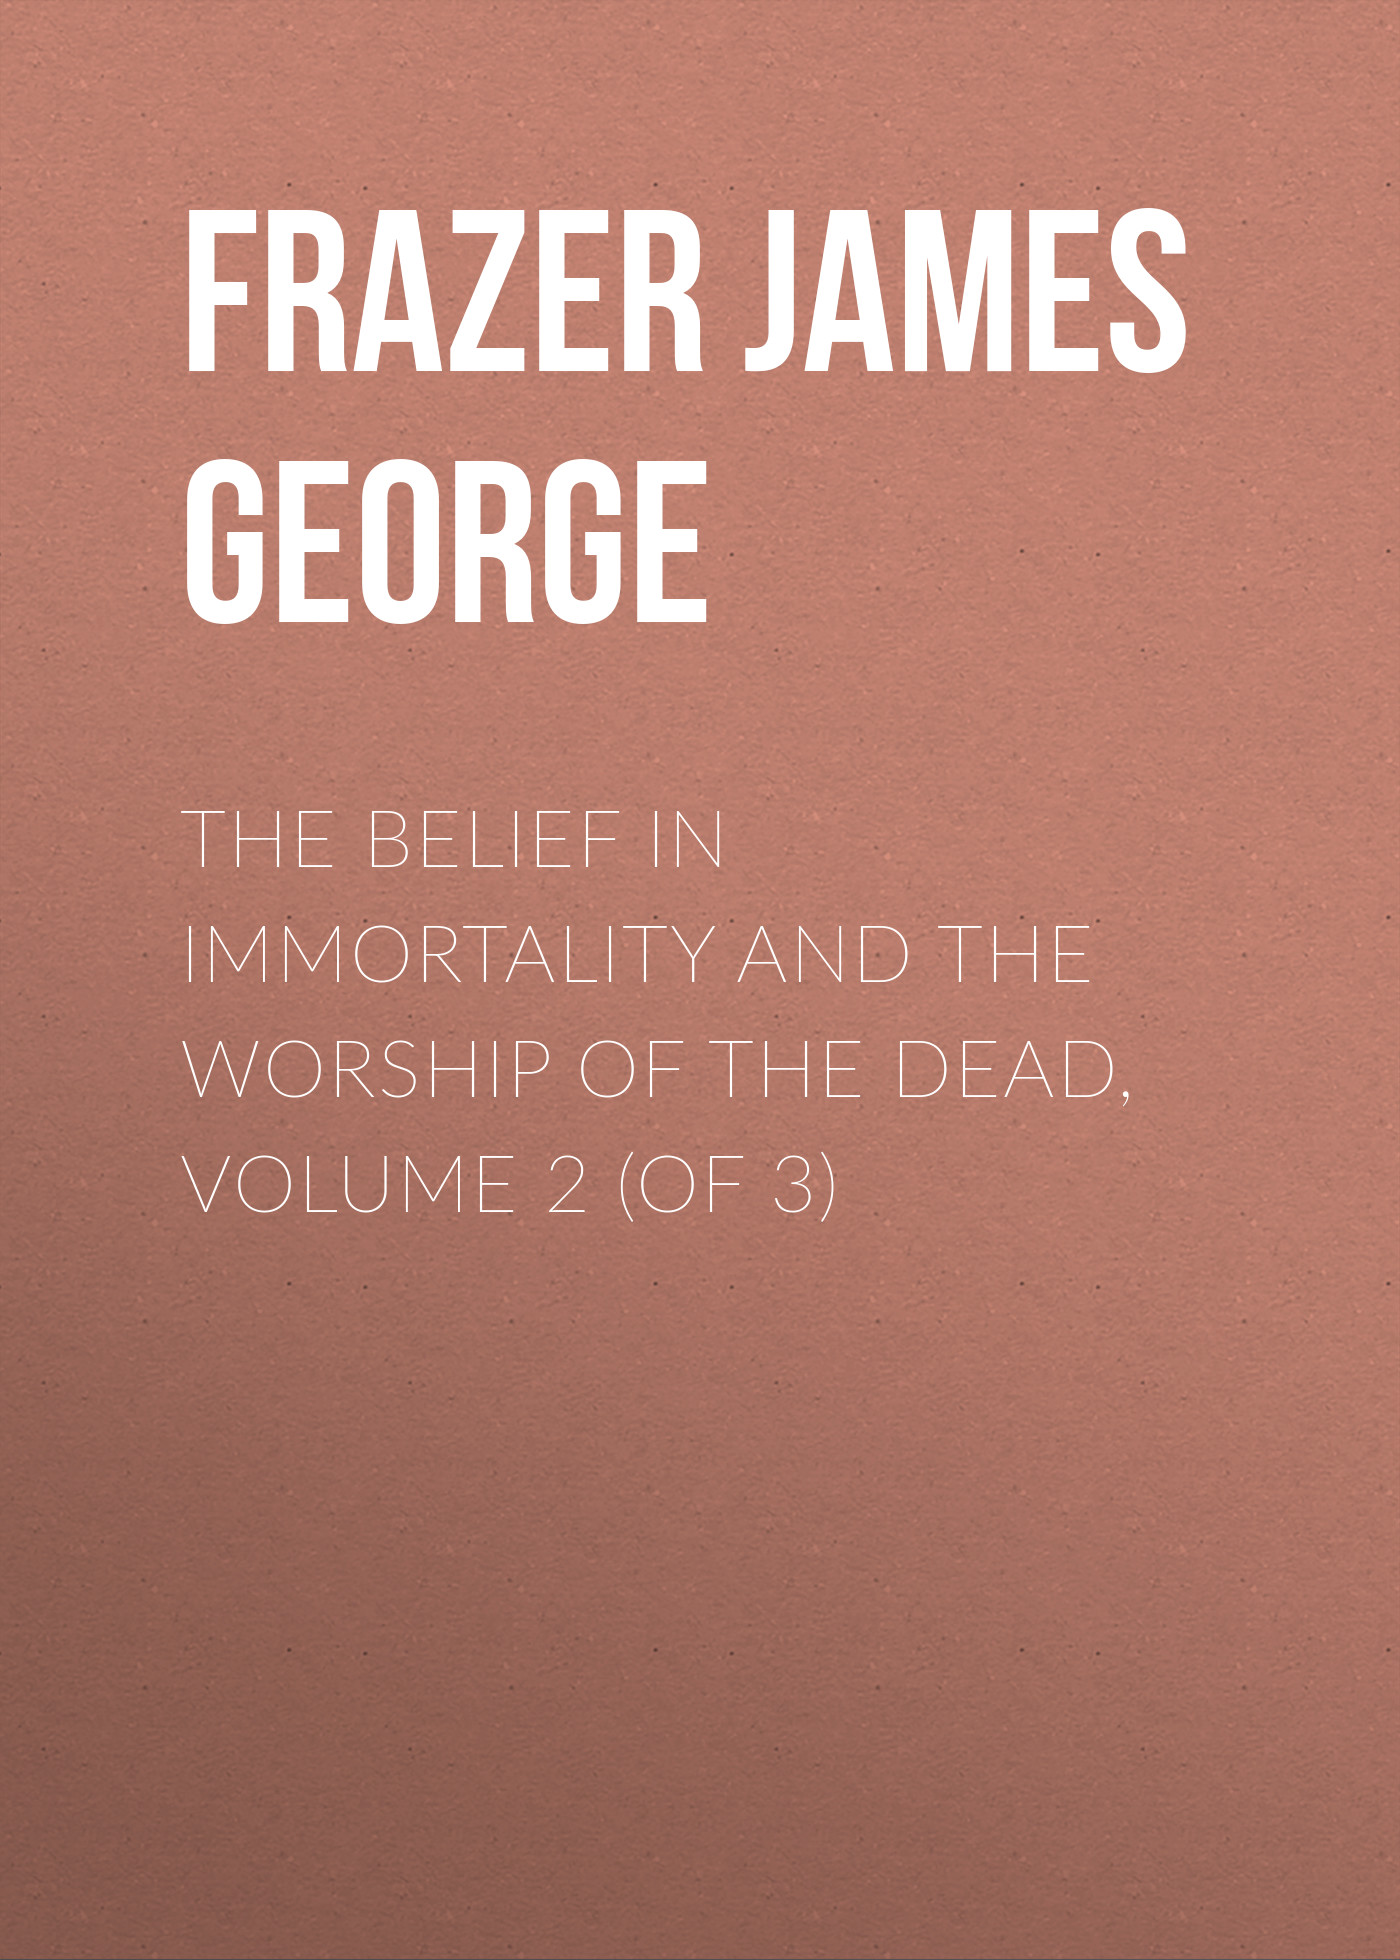 Frazer James George The Belief in Immortality and the Worship of the Dead, Volume 2 (of 3) frazer james george the belief in immortality and the worship of the dead volume 2 of 3